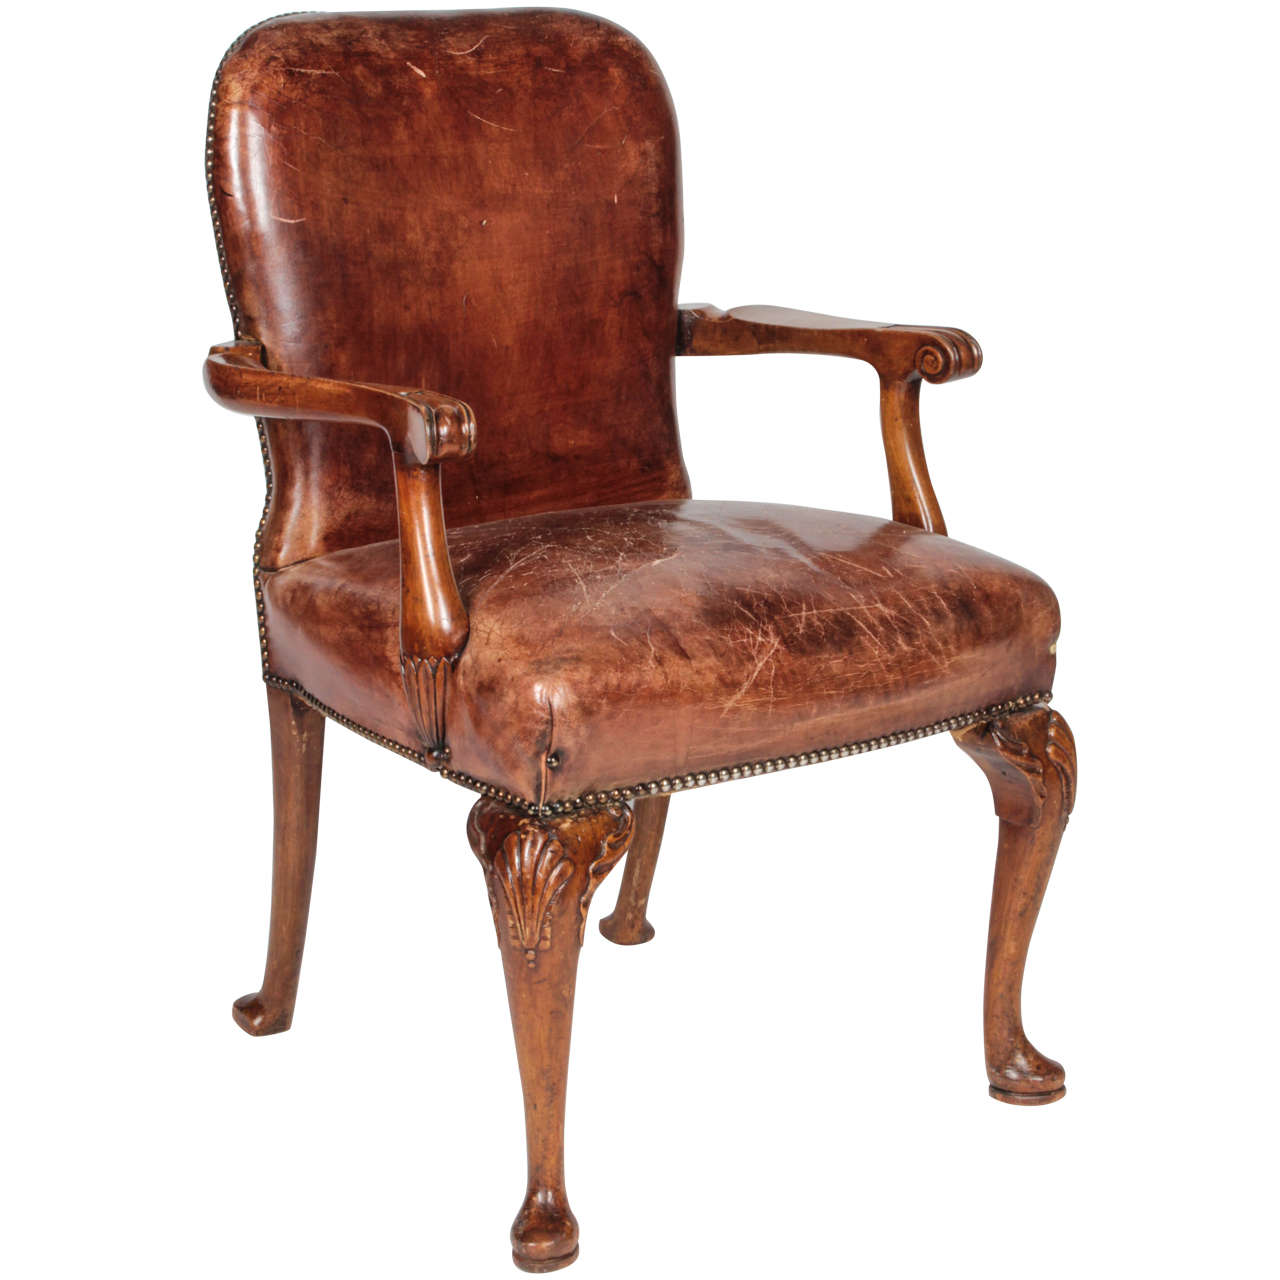 Queen anne style distressed leather arm chair for Queen anne furniture